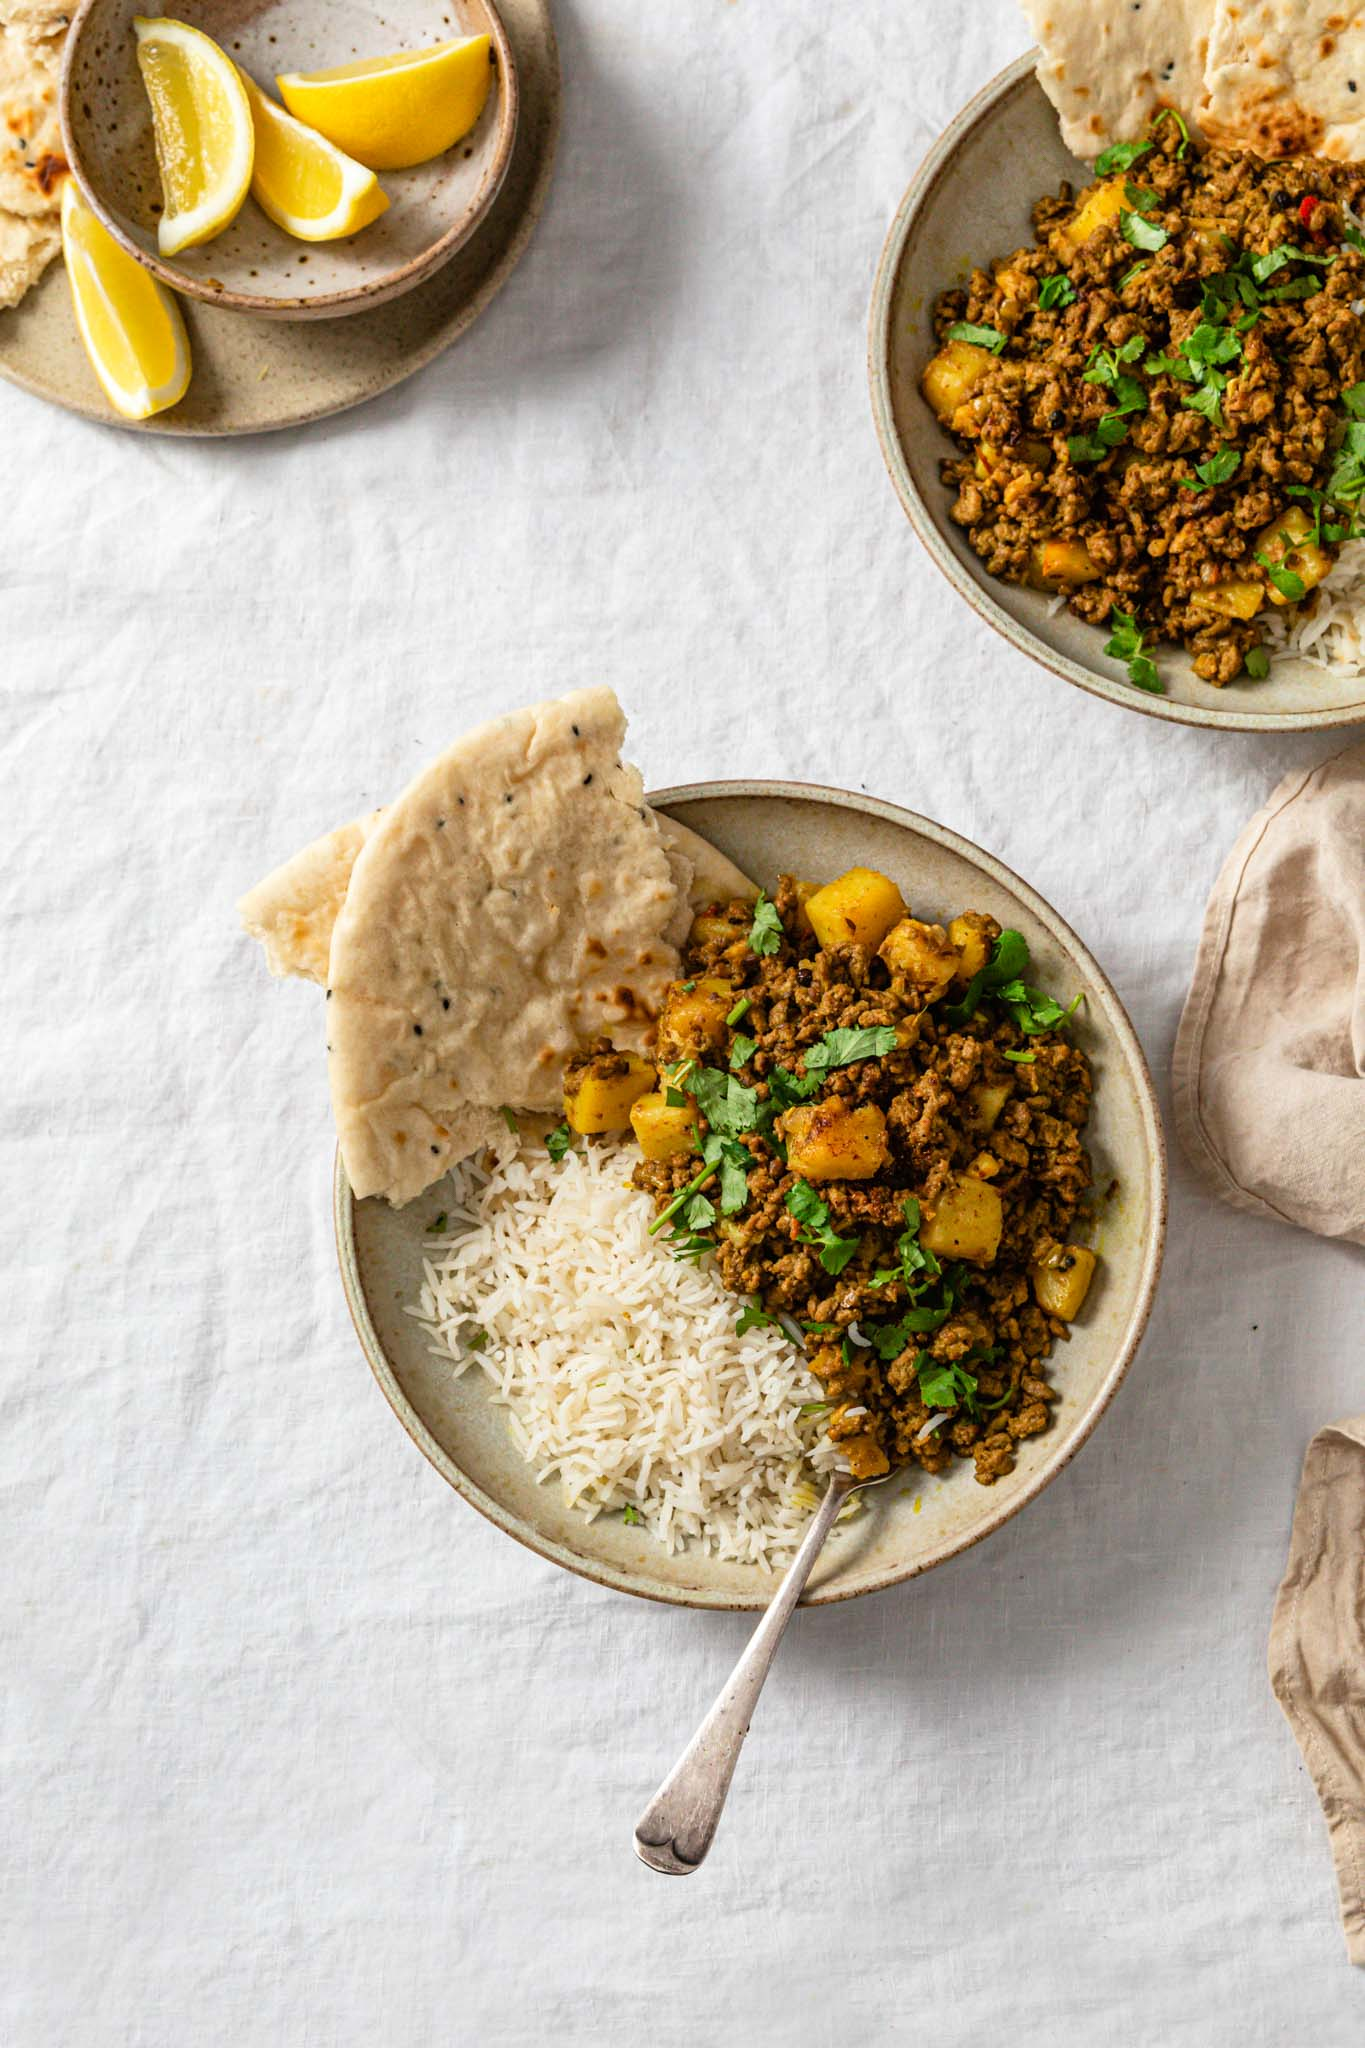 Ground Beef (Keema Aloo) Curry in a bowls with naan and basmati rice